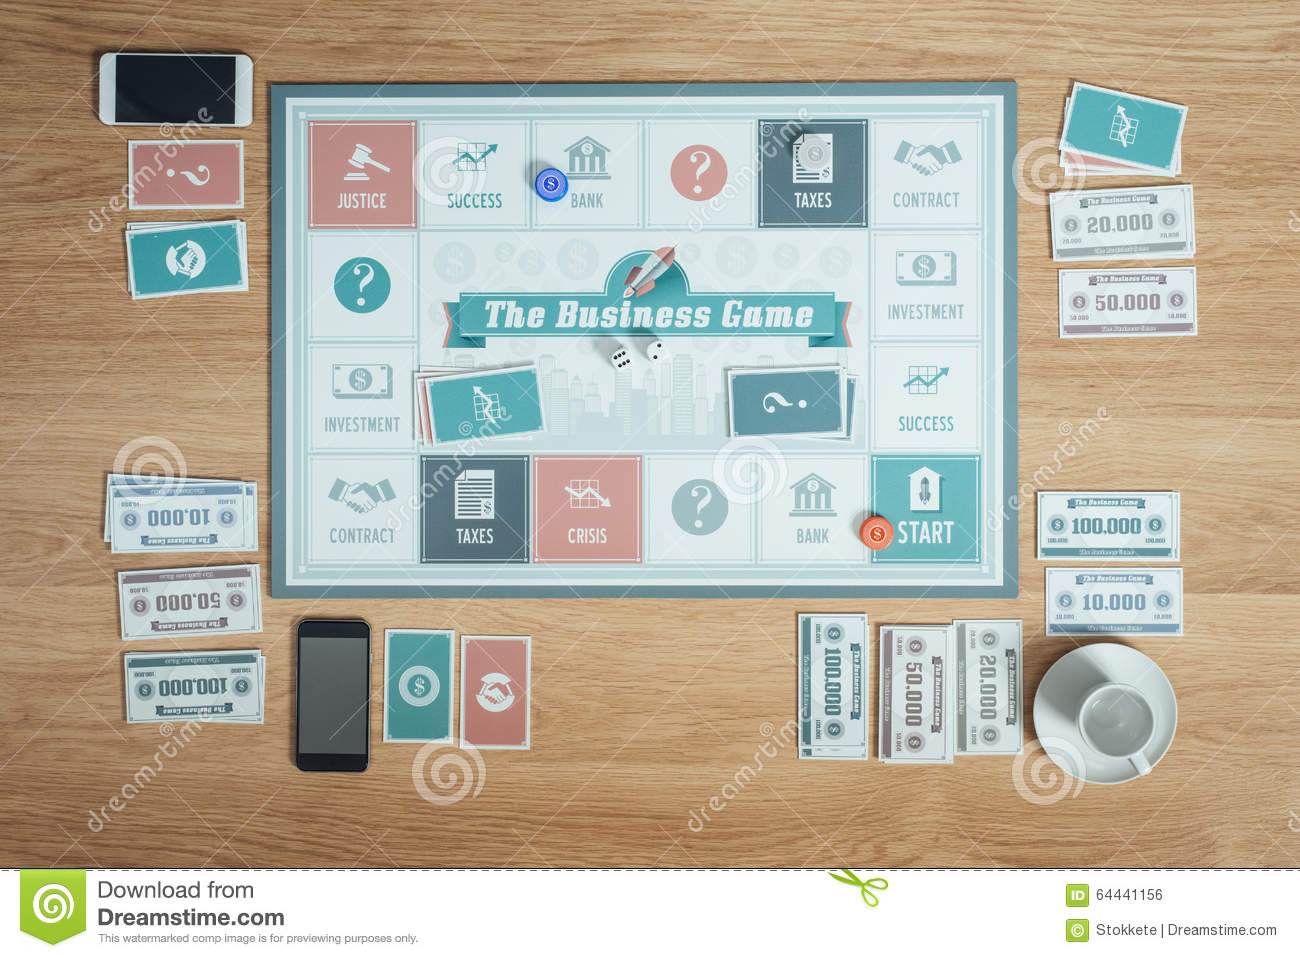 The Business Game Stock Photo Image Of Phone Ideas 64441156